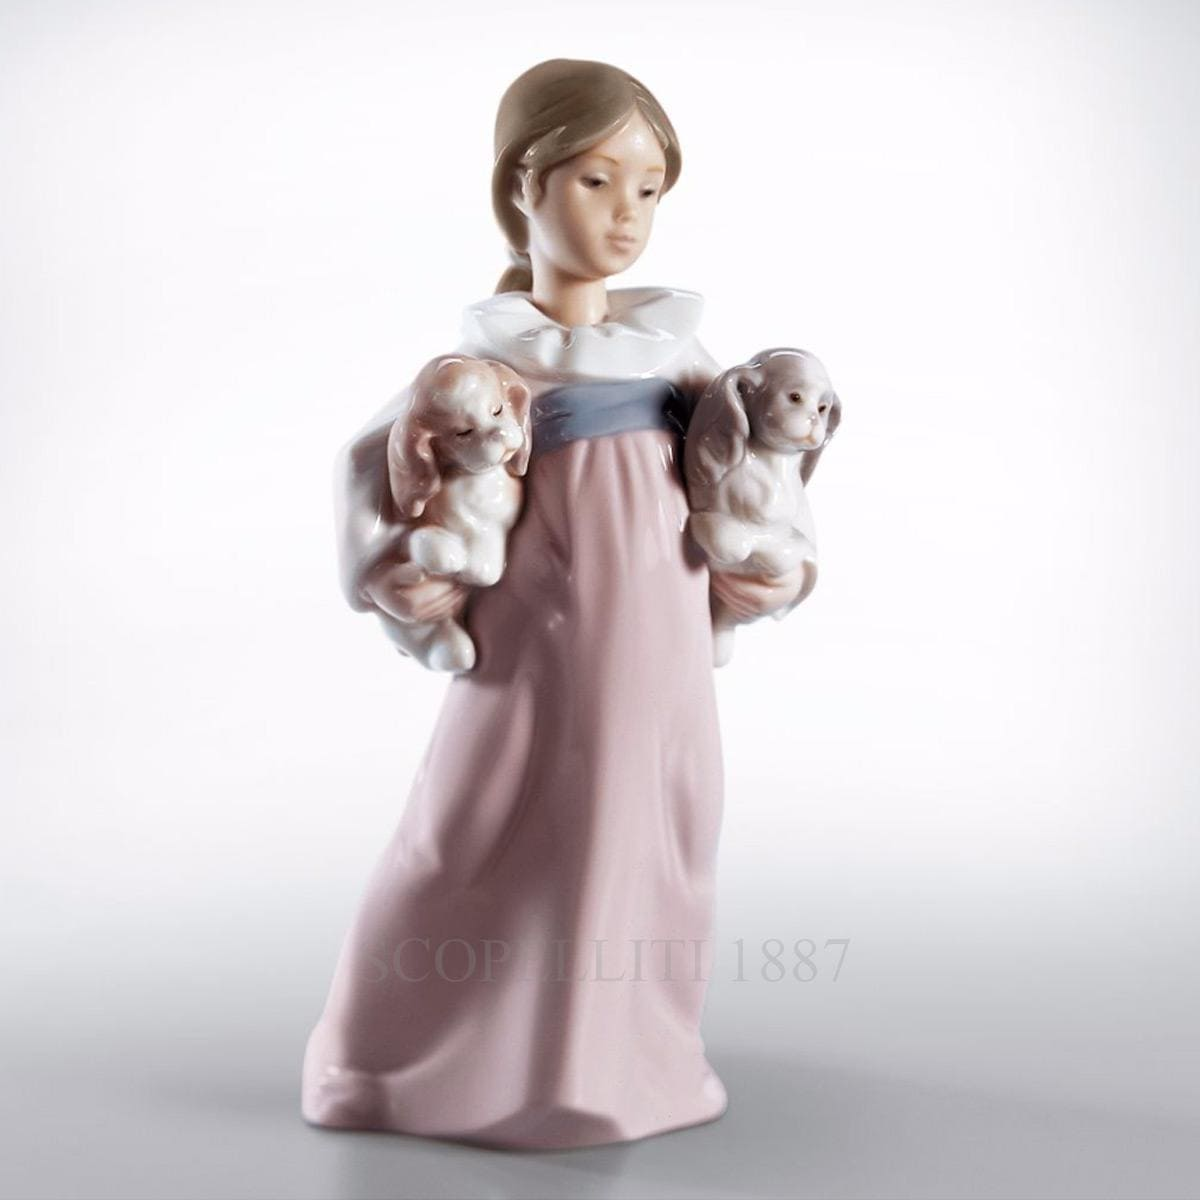 Lladró Arms Full Of Love Porcelain Figurine